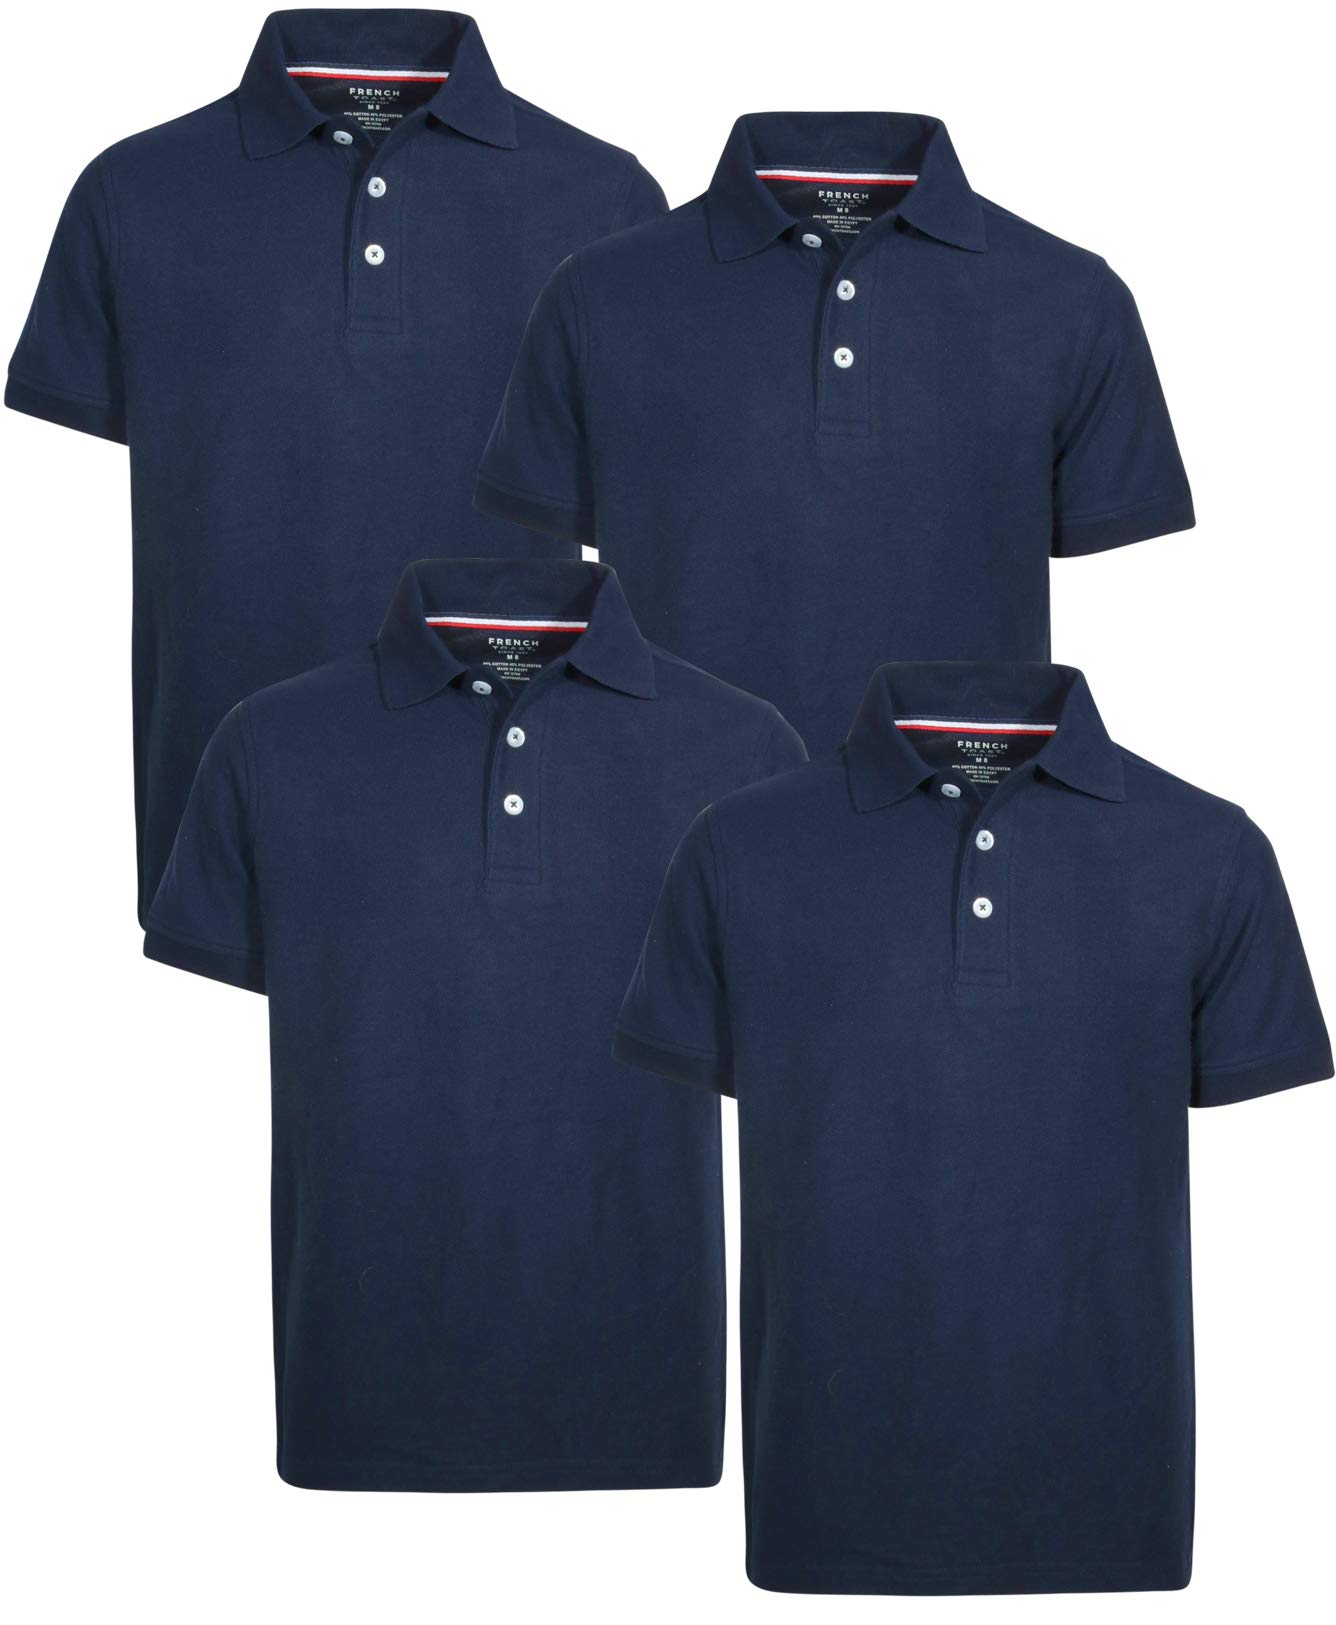 French Toast Boys Short Sleeve Uniform Polo Shirt - 4 Pack, Navy, Size Large' by French Toast (Image #1)